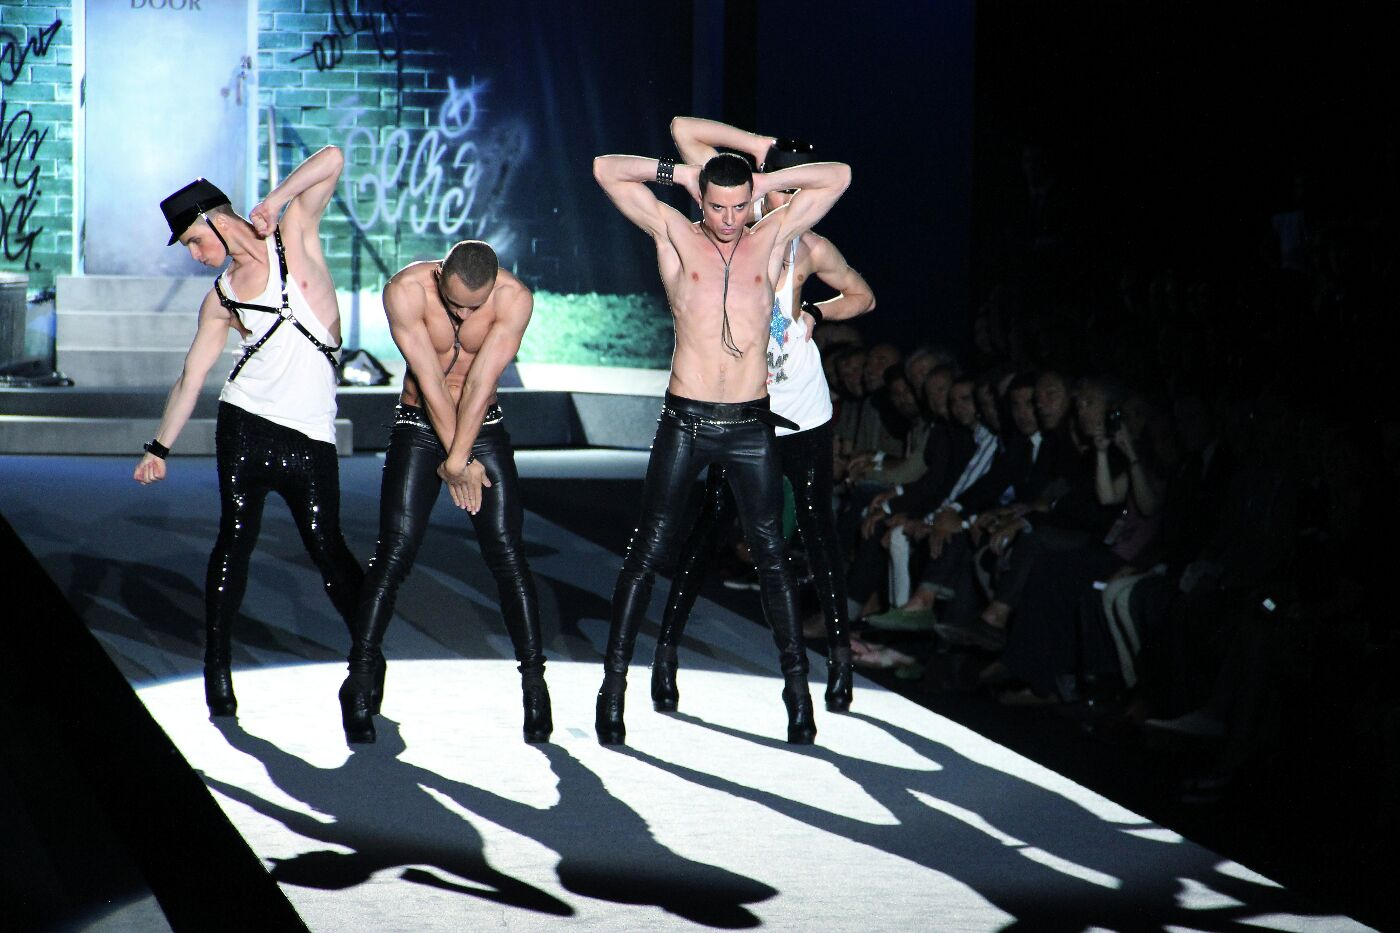 dsquared2-spring-summer-2012-men-collection-milano-fashion-week-2012-dsquared2-primavera-estate-catwalk-2012